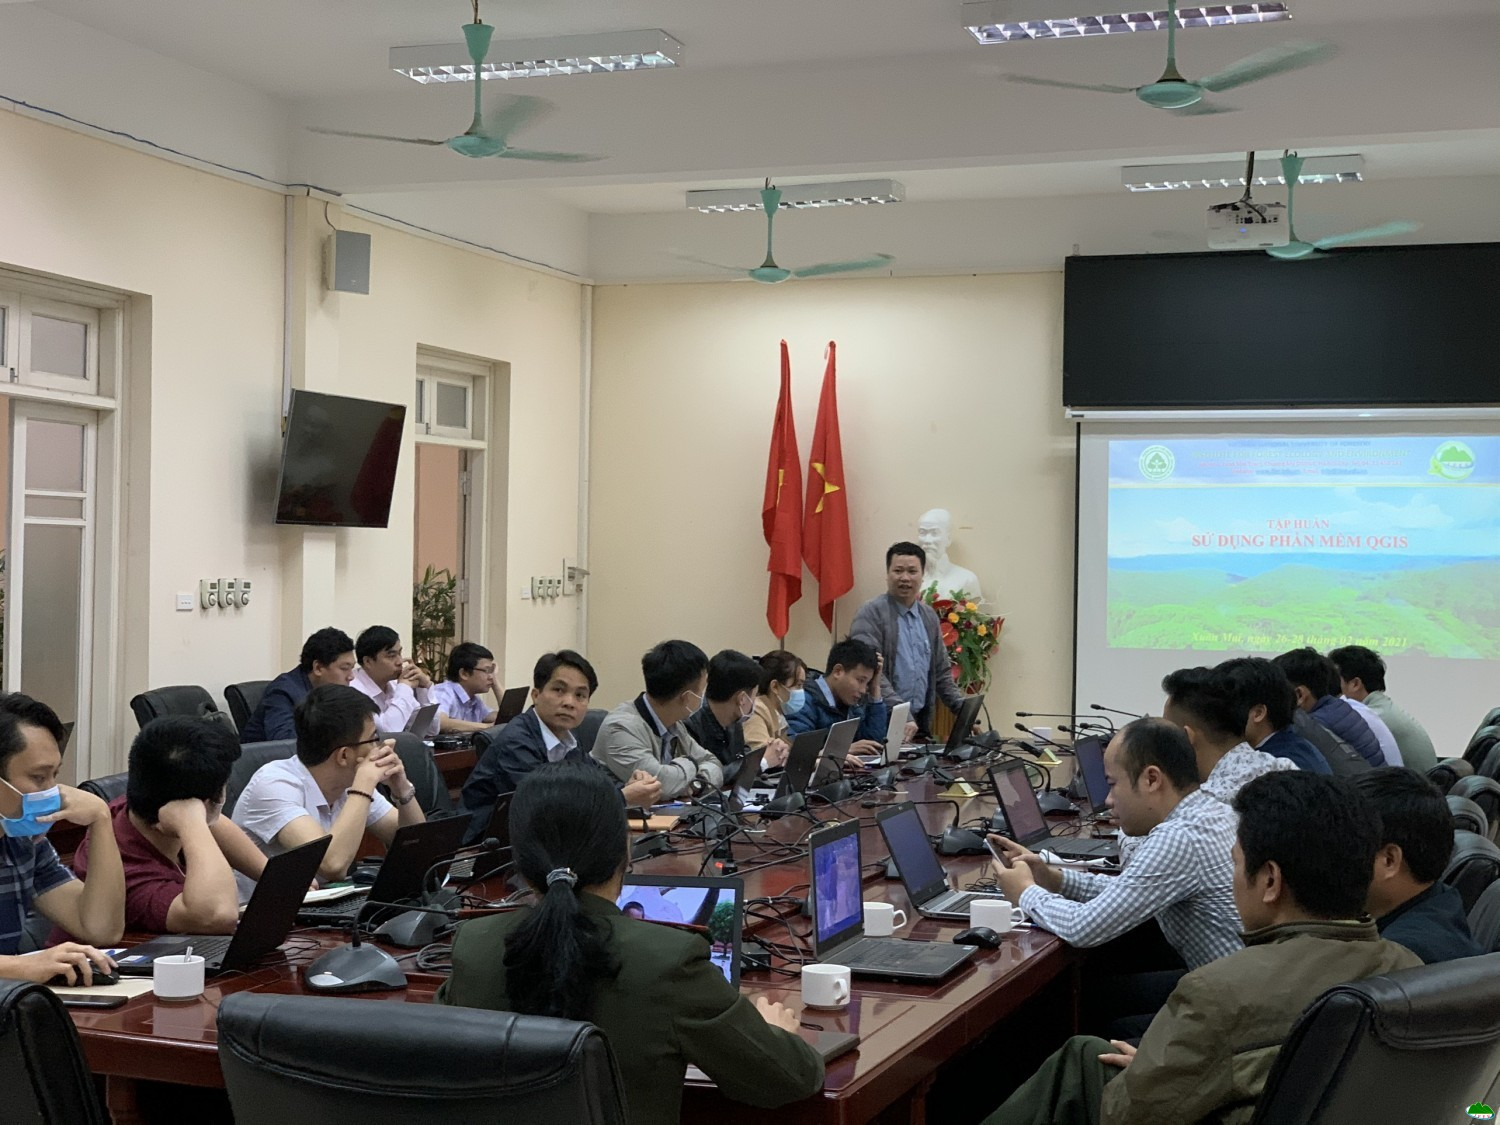 Training course on Using QGIS in Forestry management